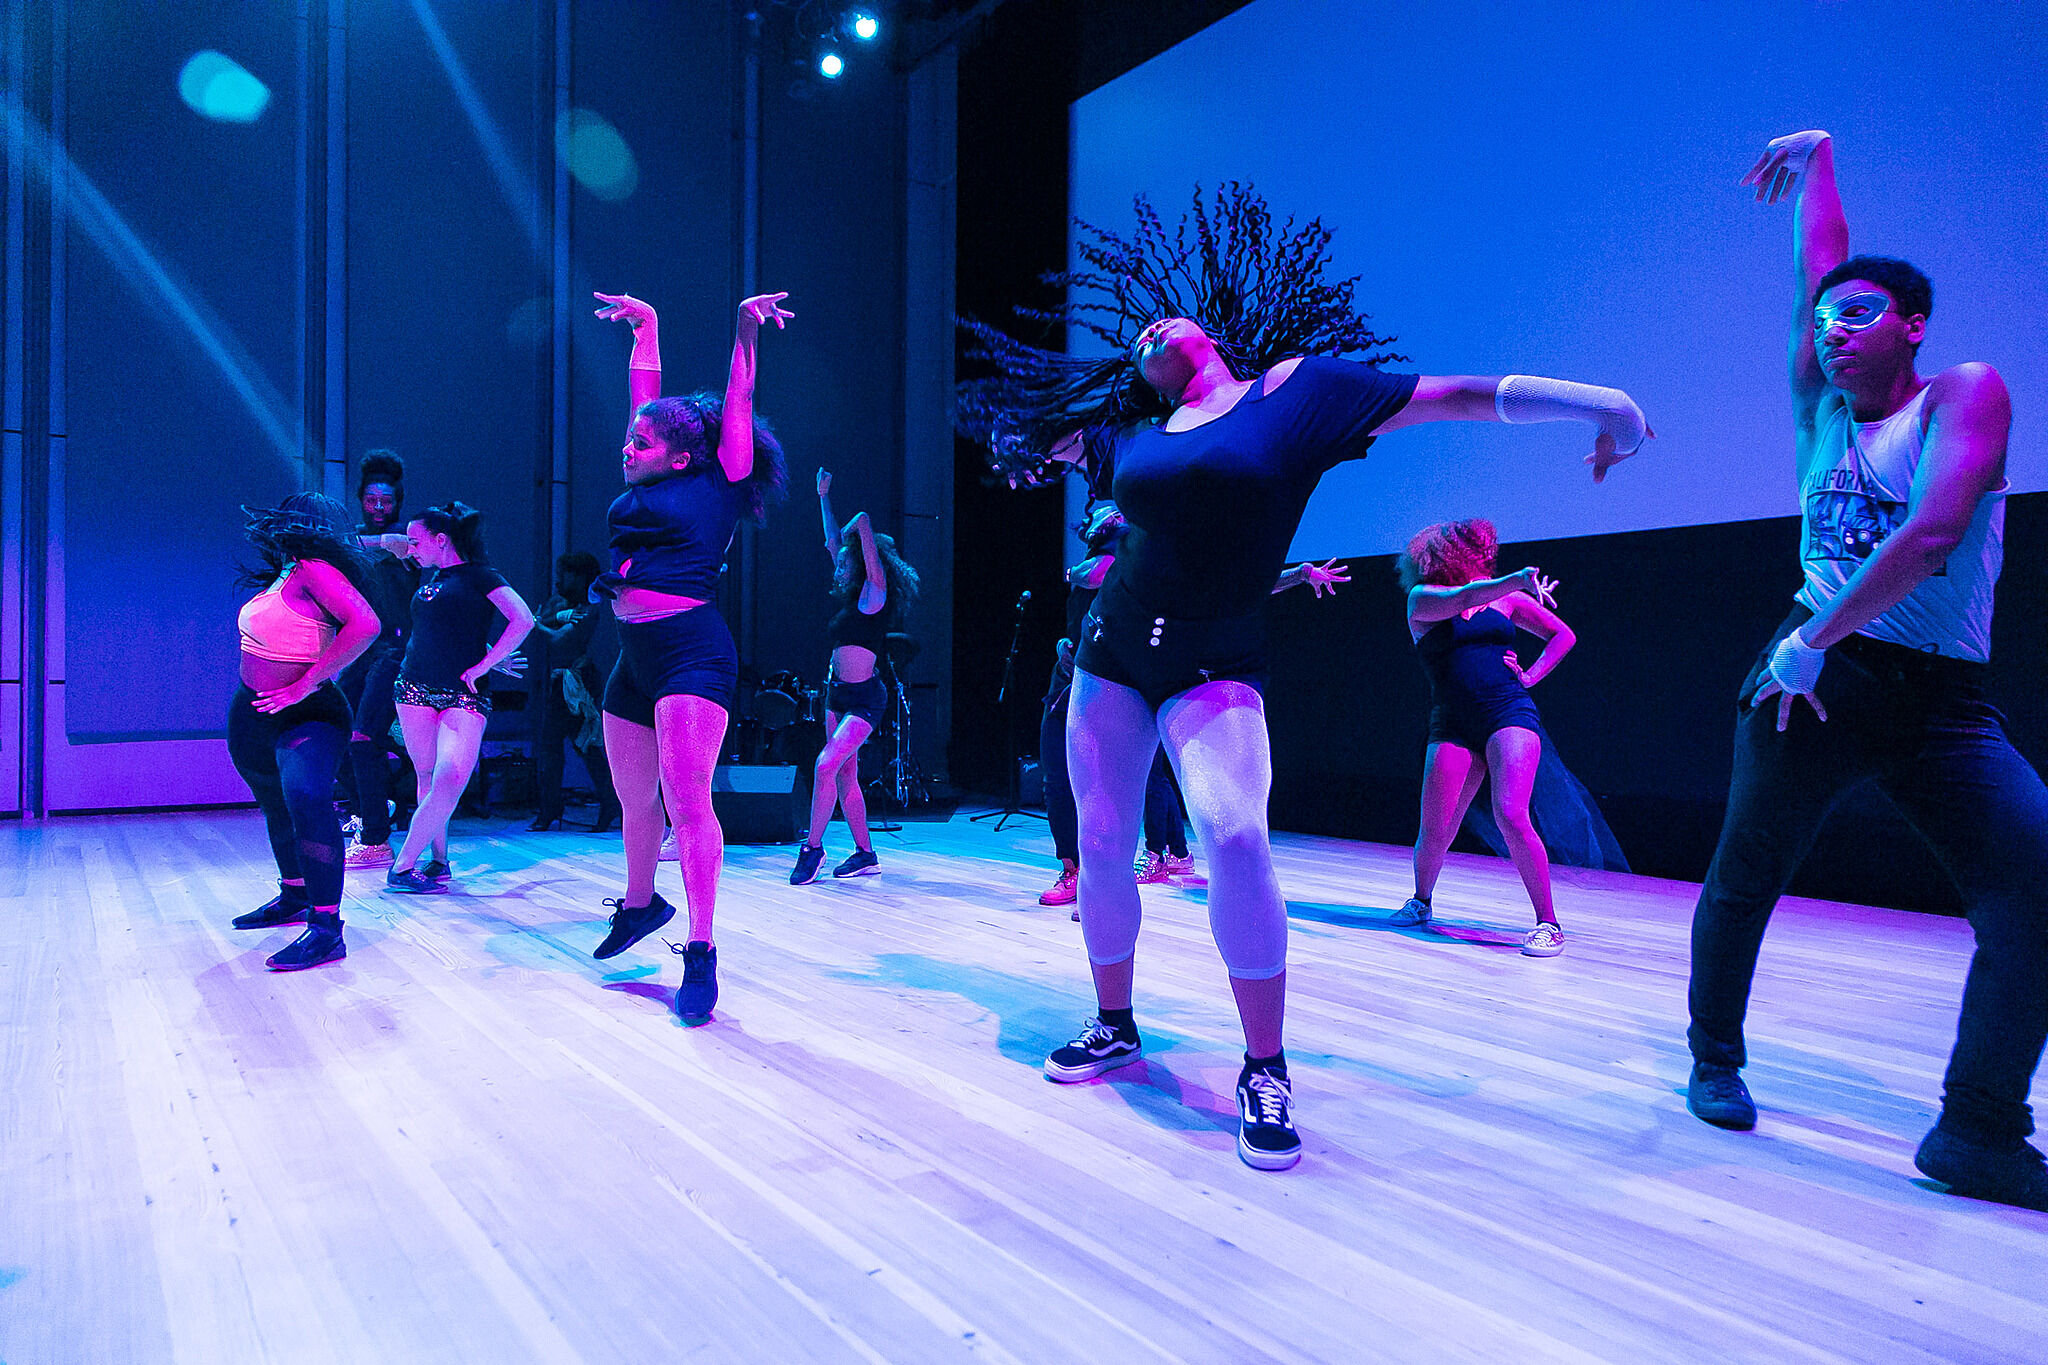 A group of people engaging in a dance performance.